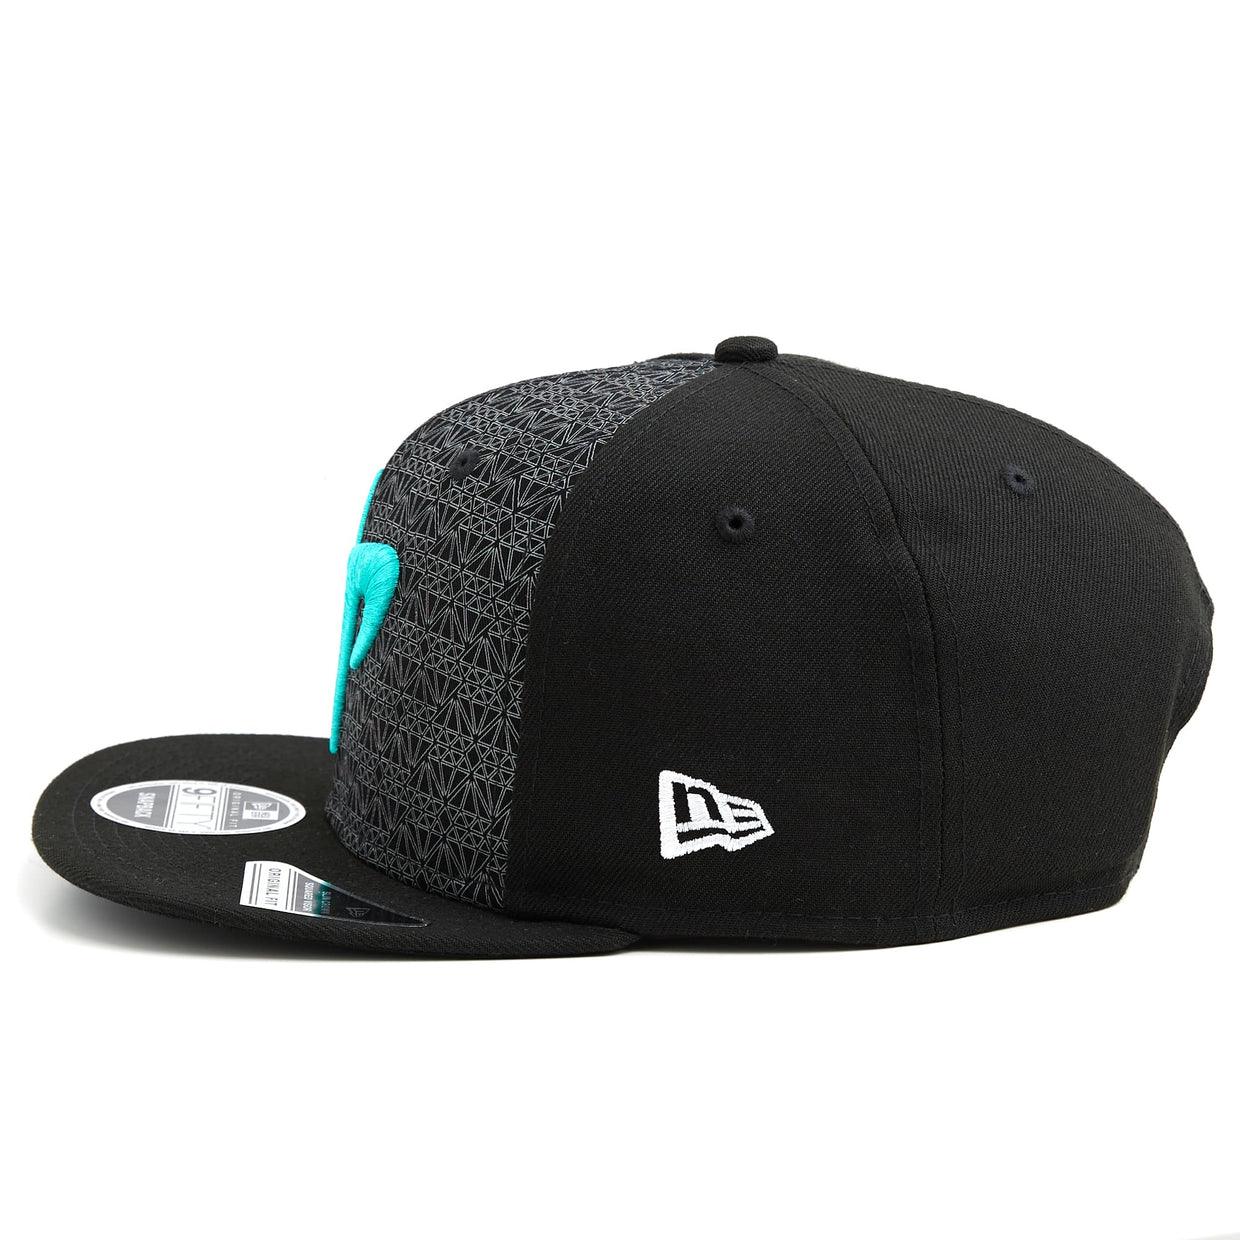 DP x New Era 9Fifty Reflective Diamond Snapback